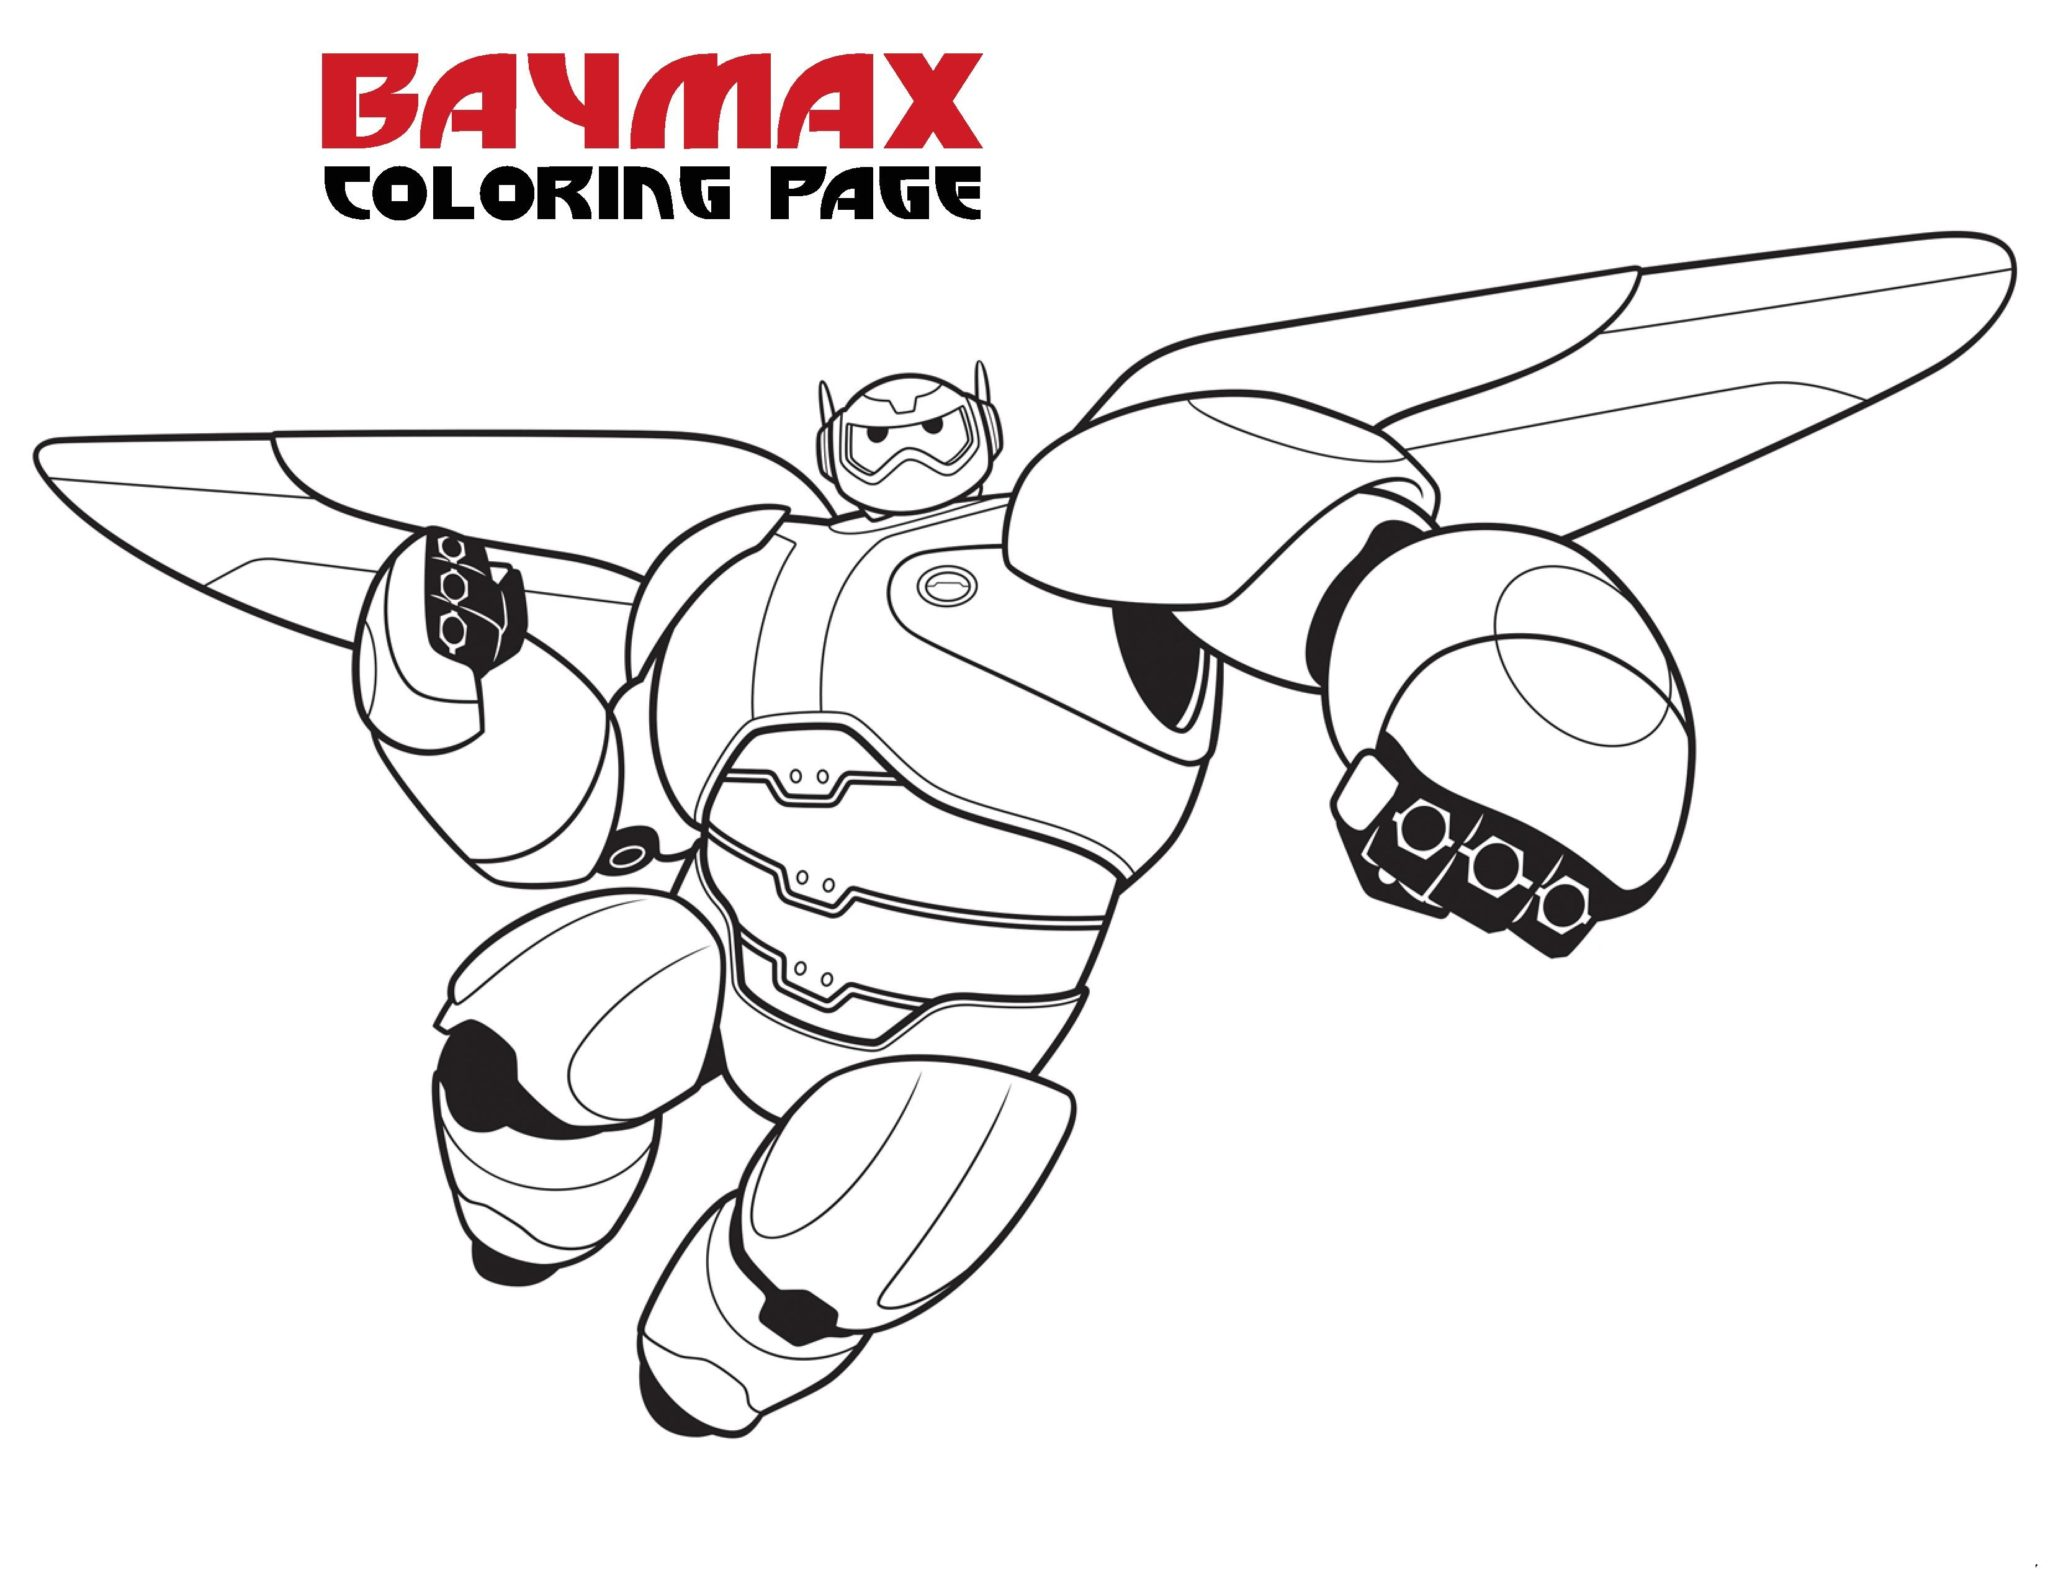 Printable big hero 6 baymax coloring pages for kids